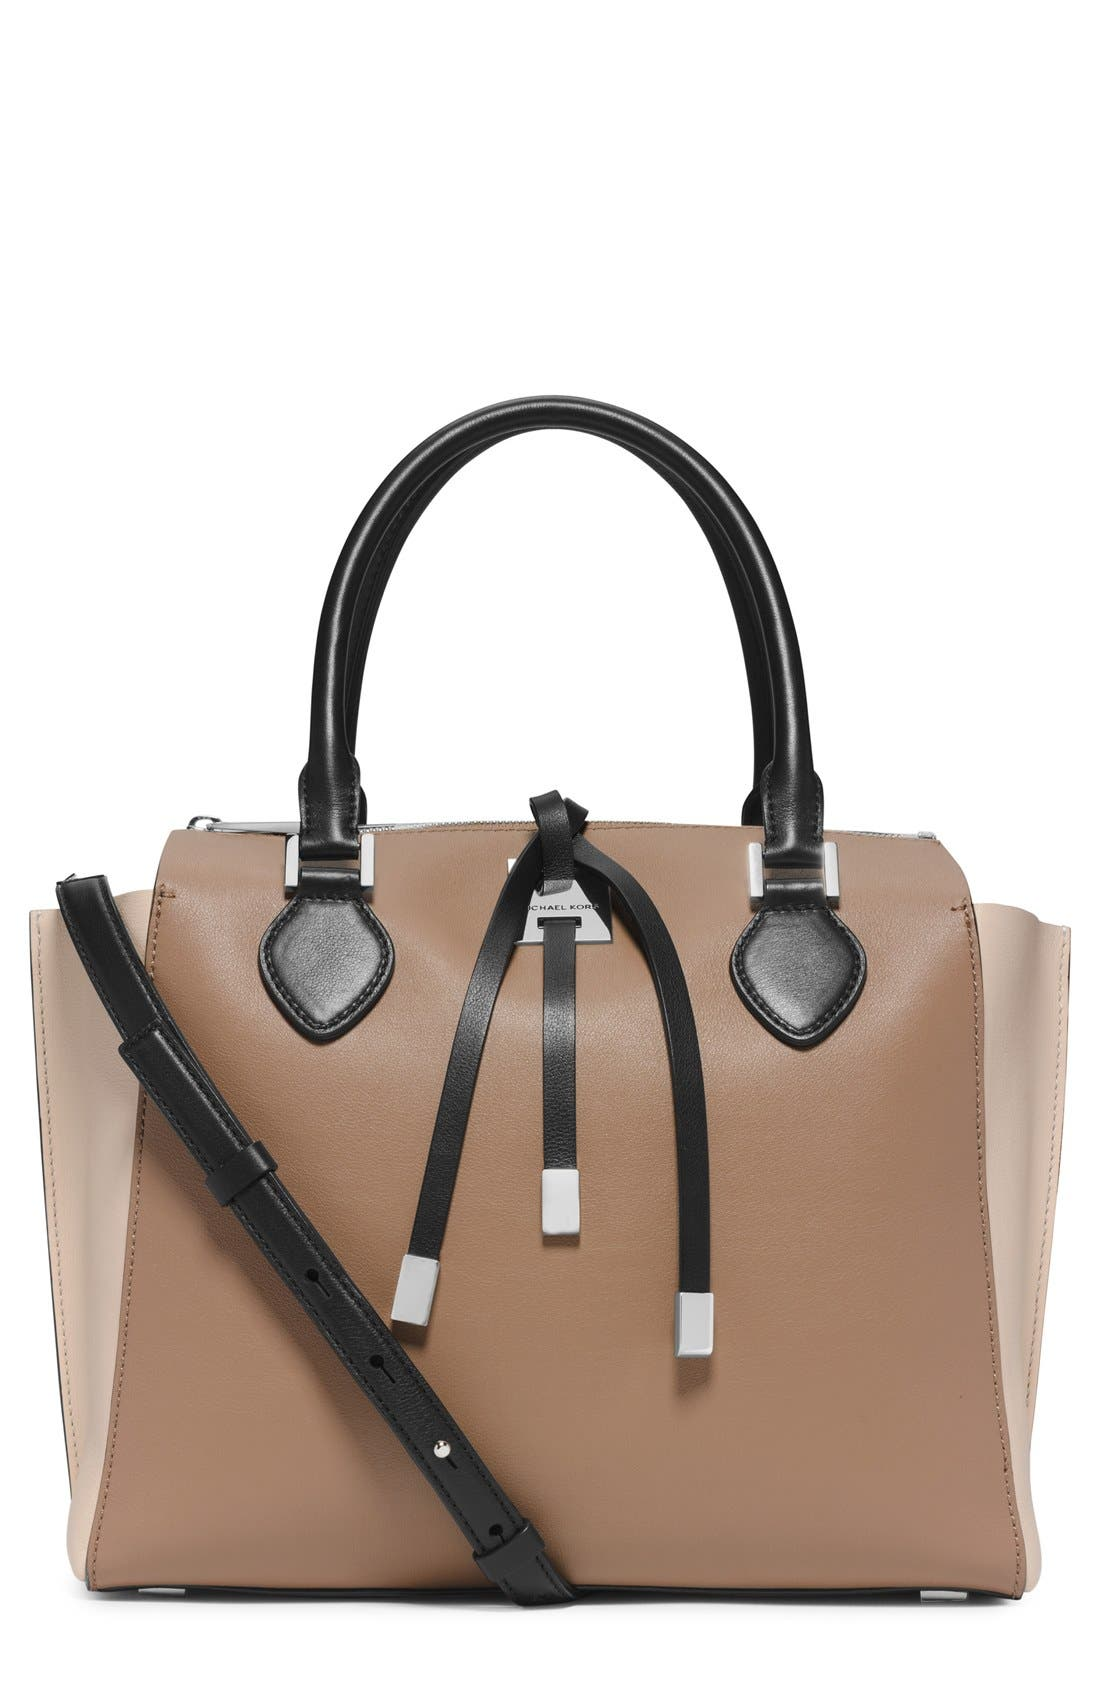 Main Image - Michael Kors 'Miranda - Large' Colorblock Leather Satchel